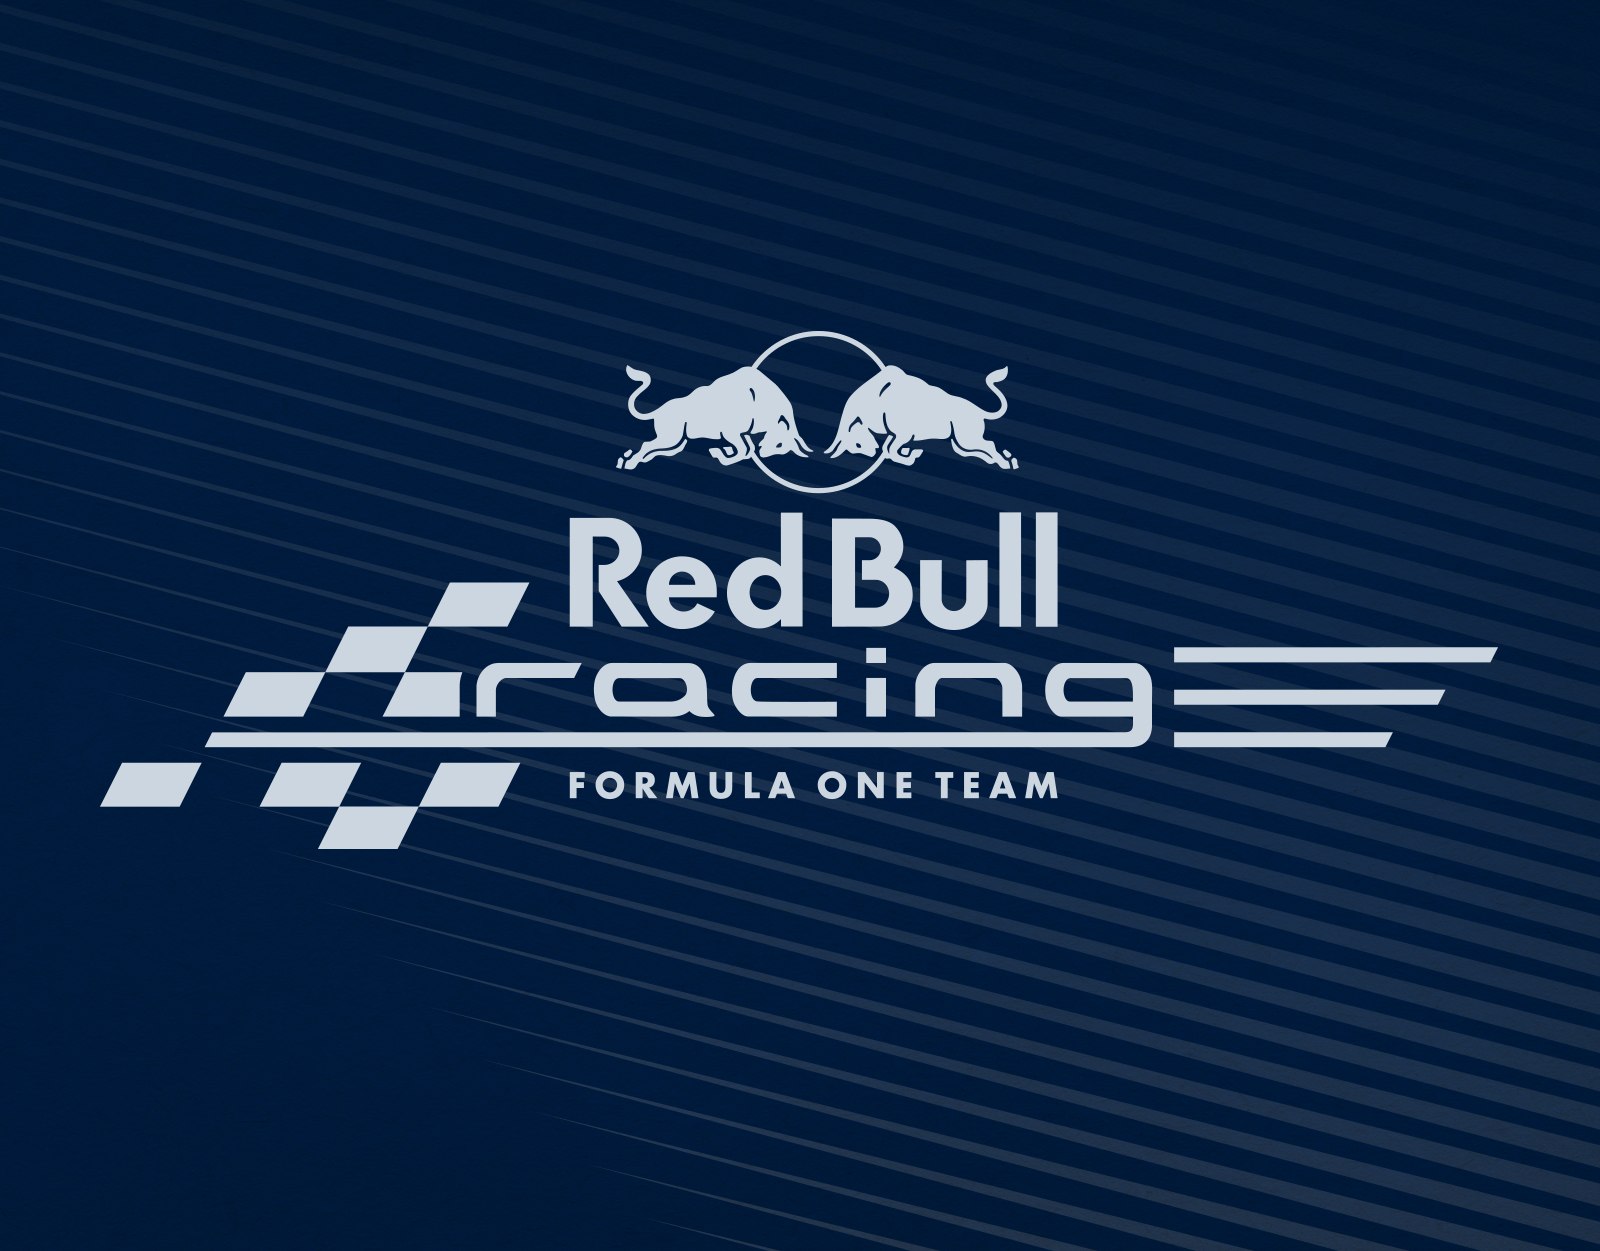 Red Bull Racing Banners